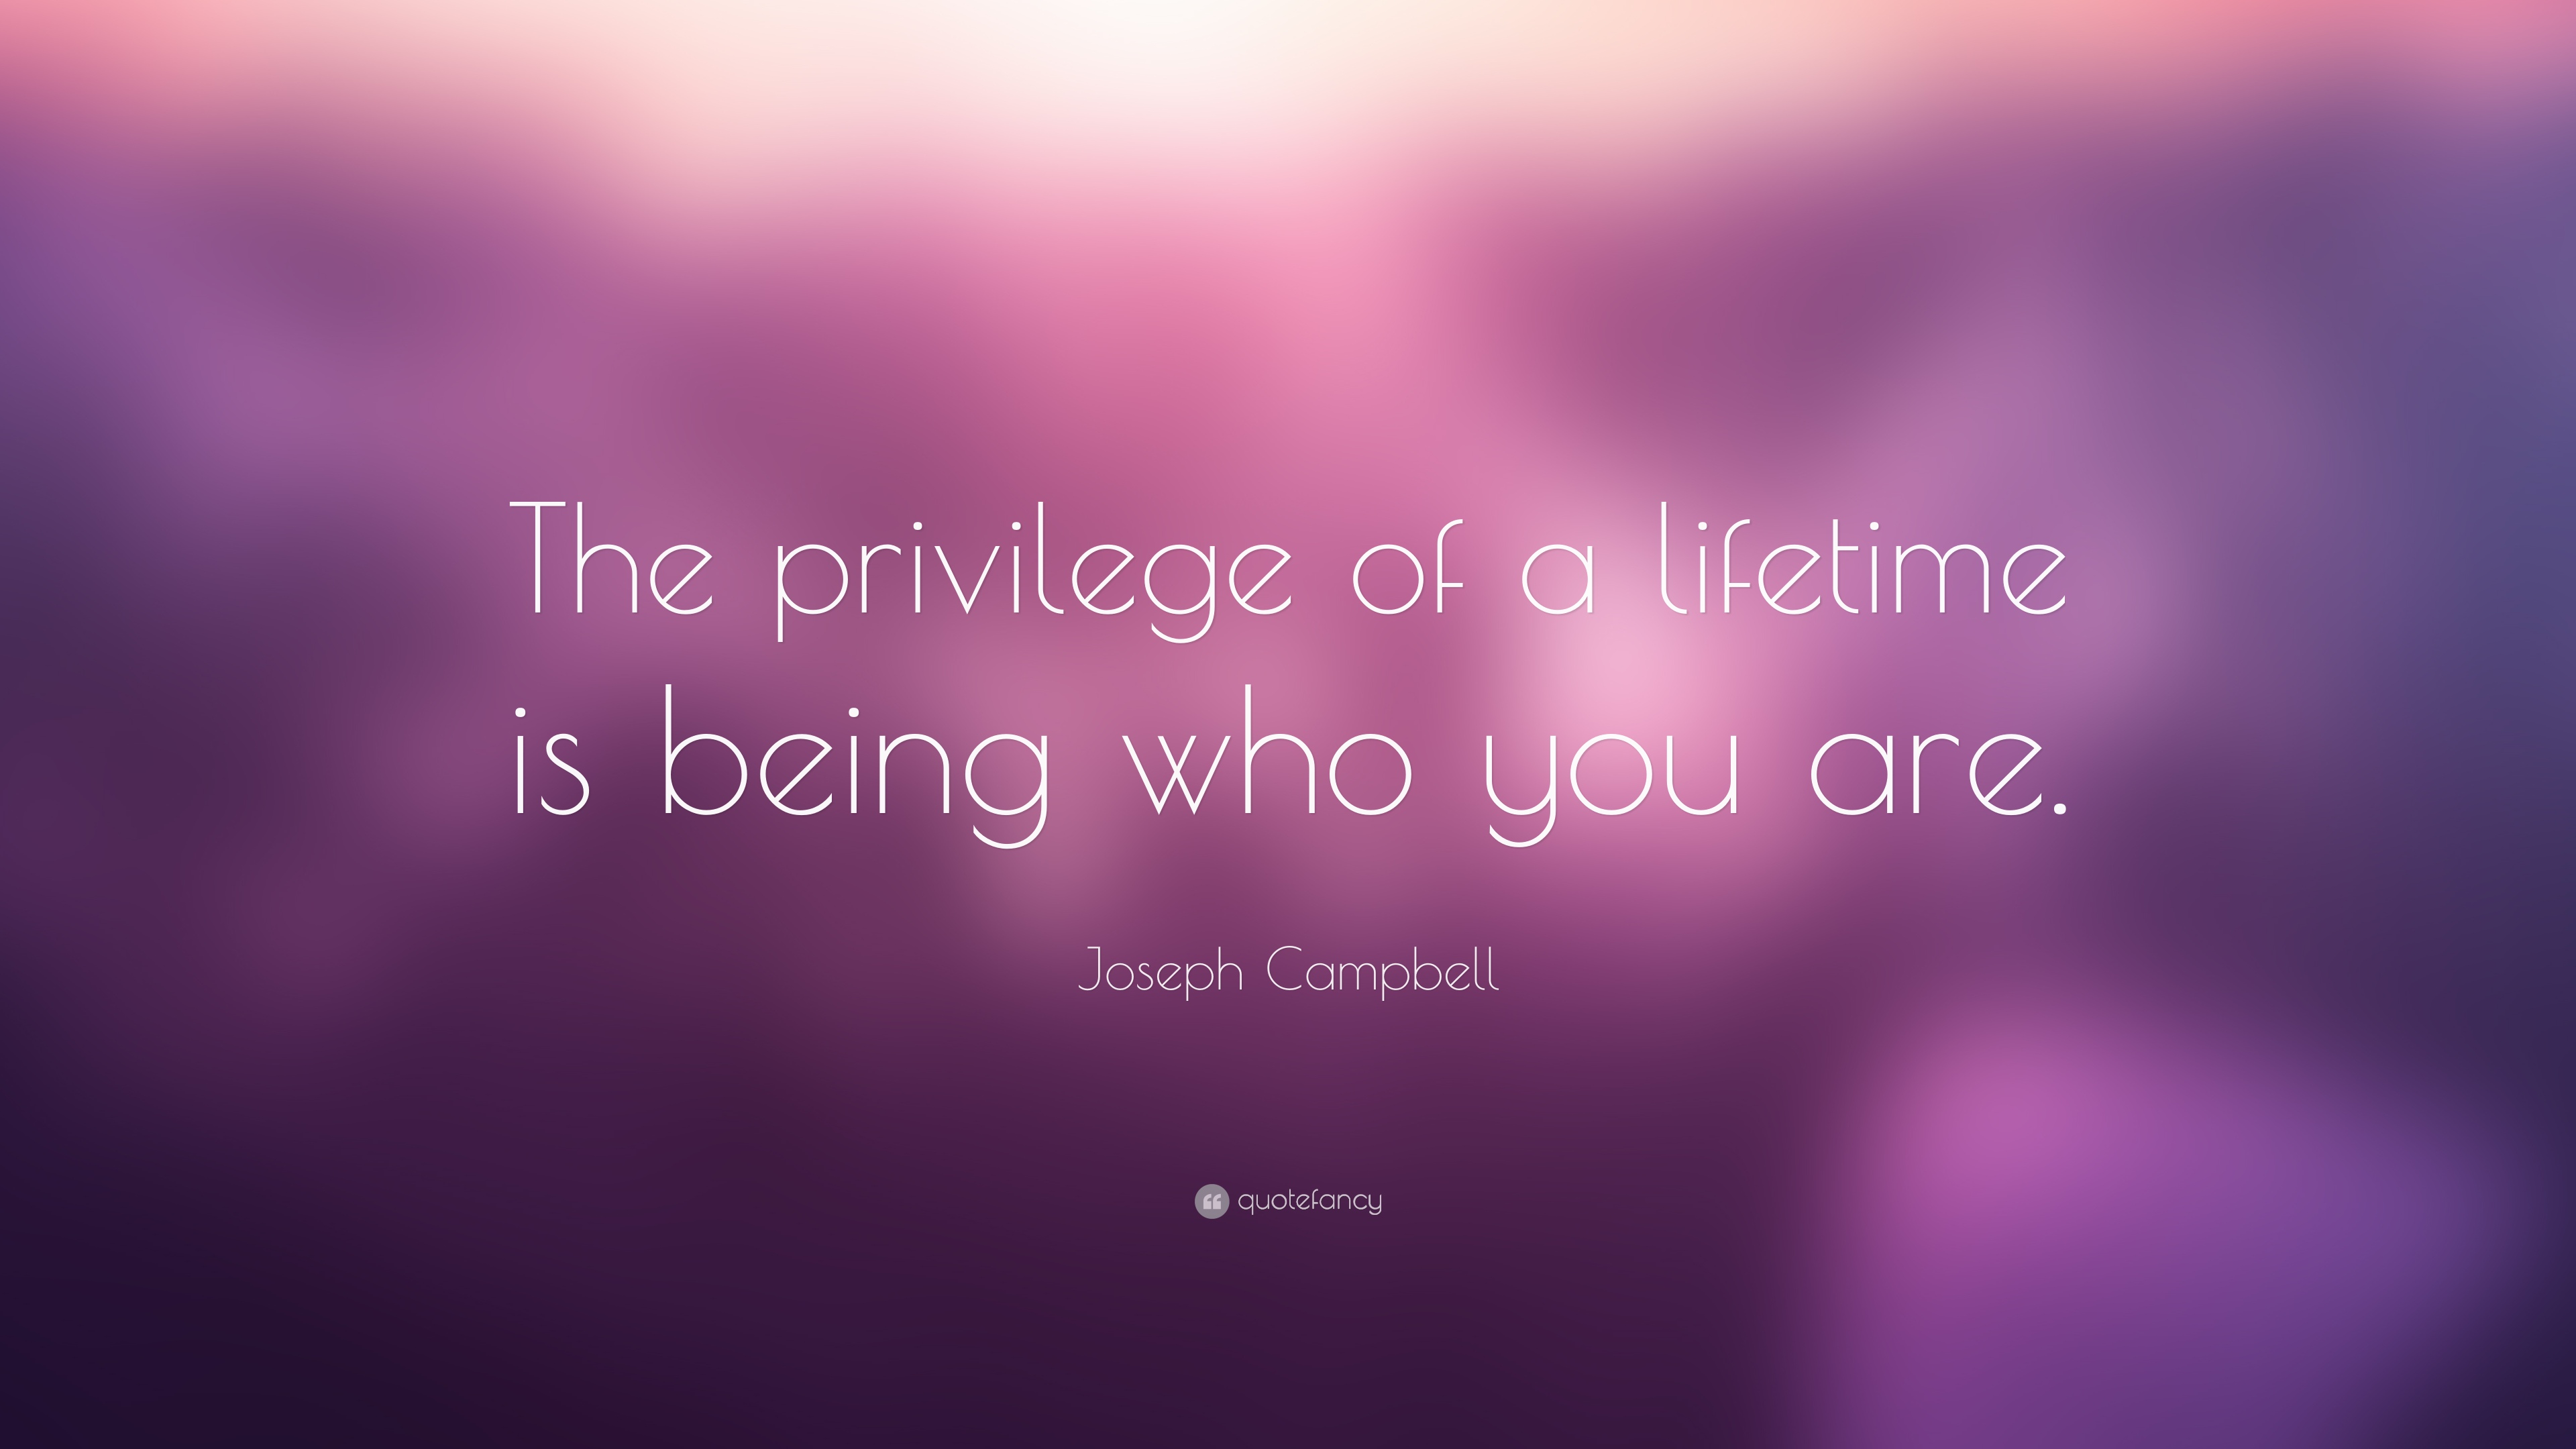 Joseph Campbell Quote: U201cThe Privilege Of A Lifetime Is Being Who You Are.